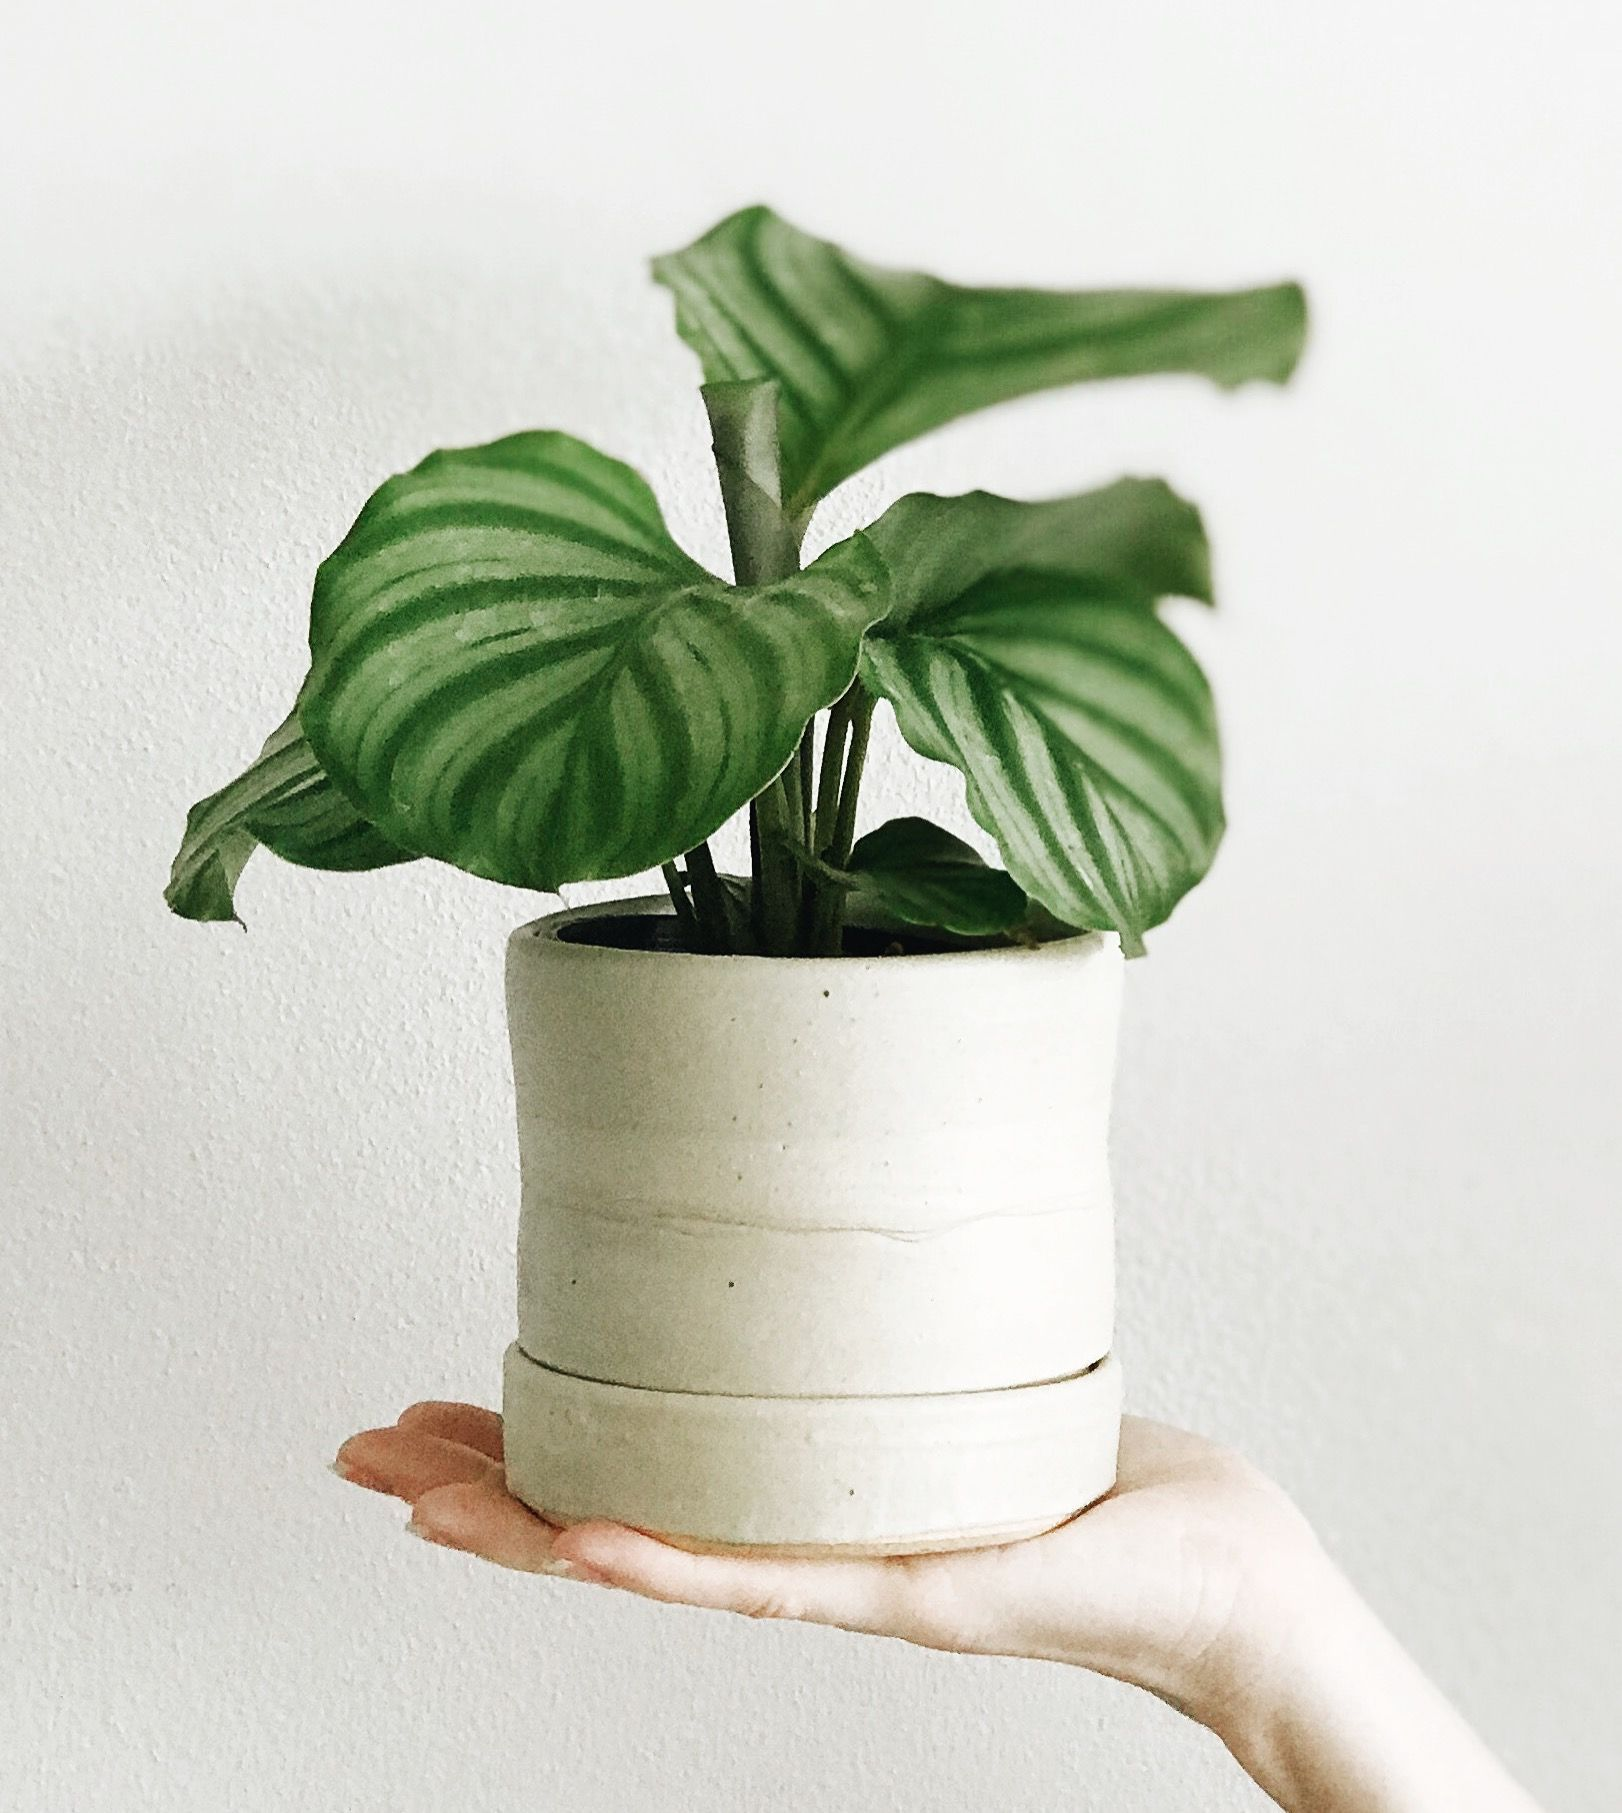 Calathea orbifolia in a handmade ceramic 'Stack' planter